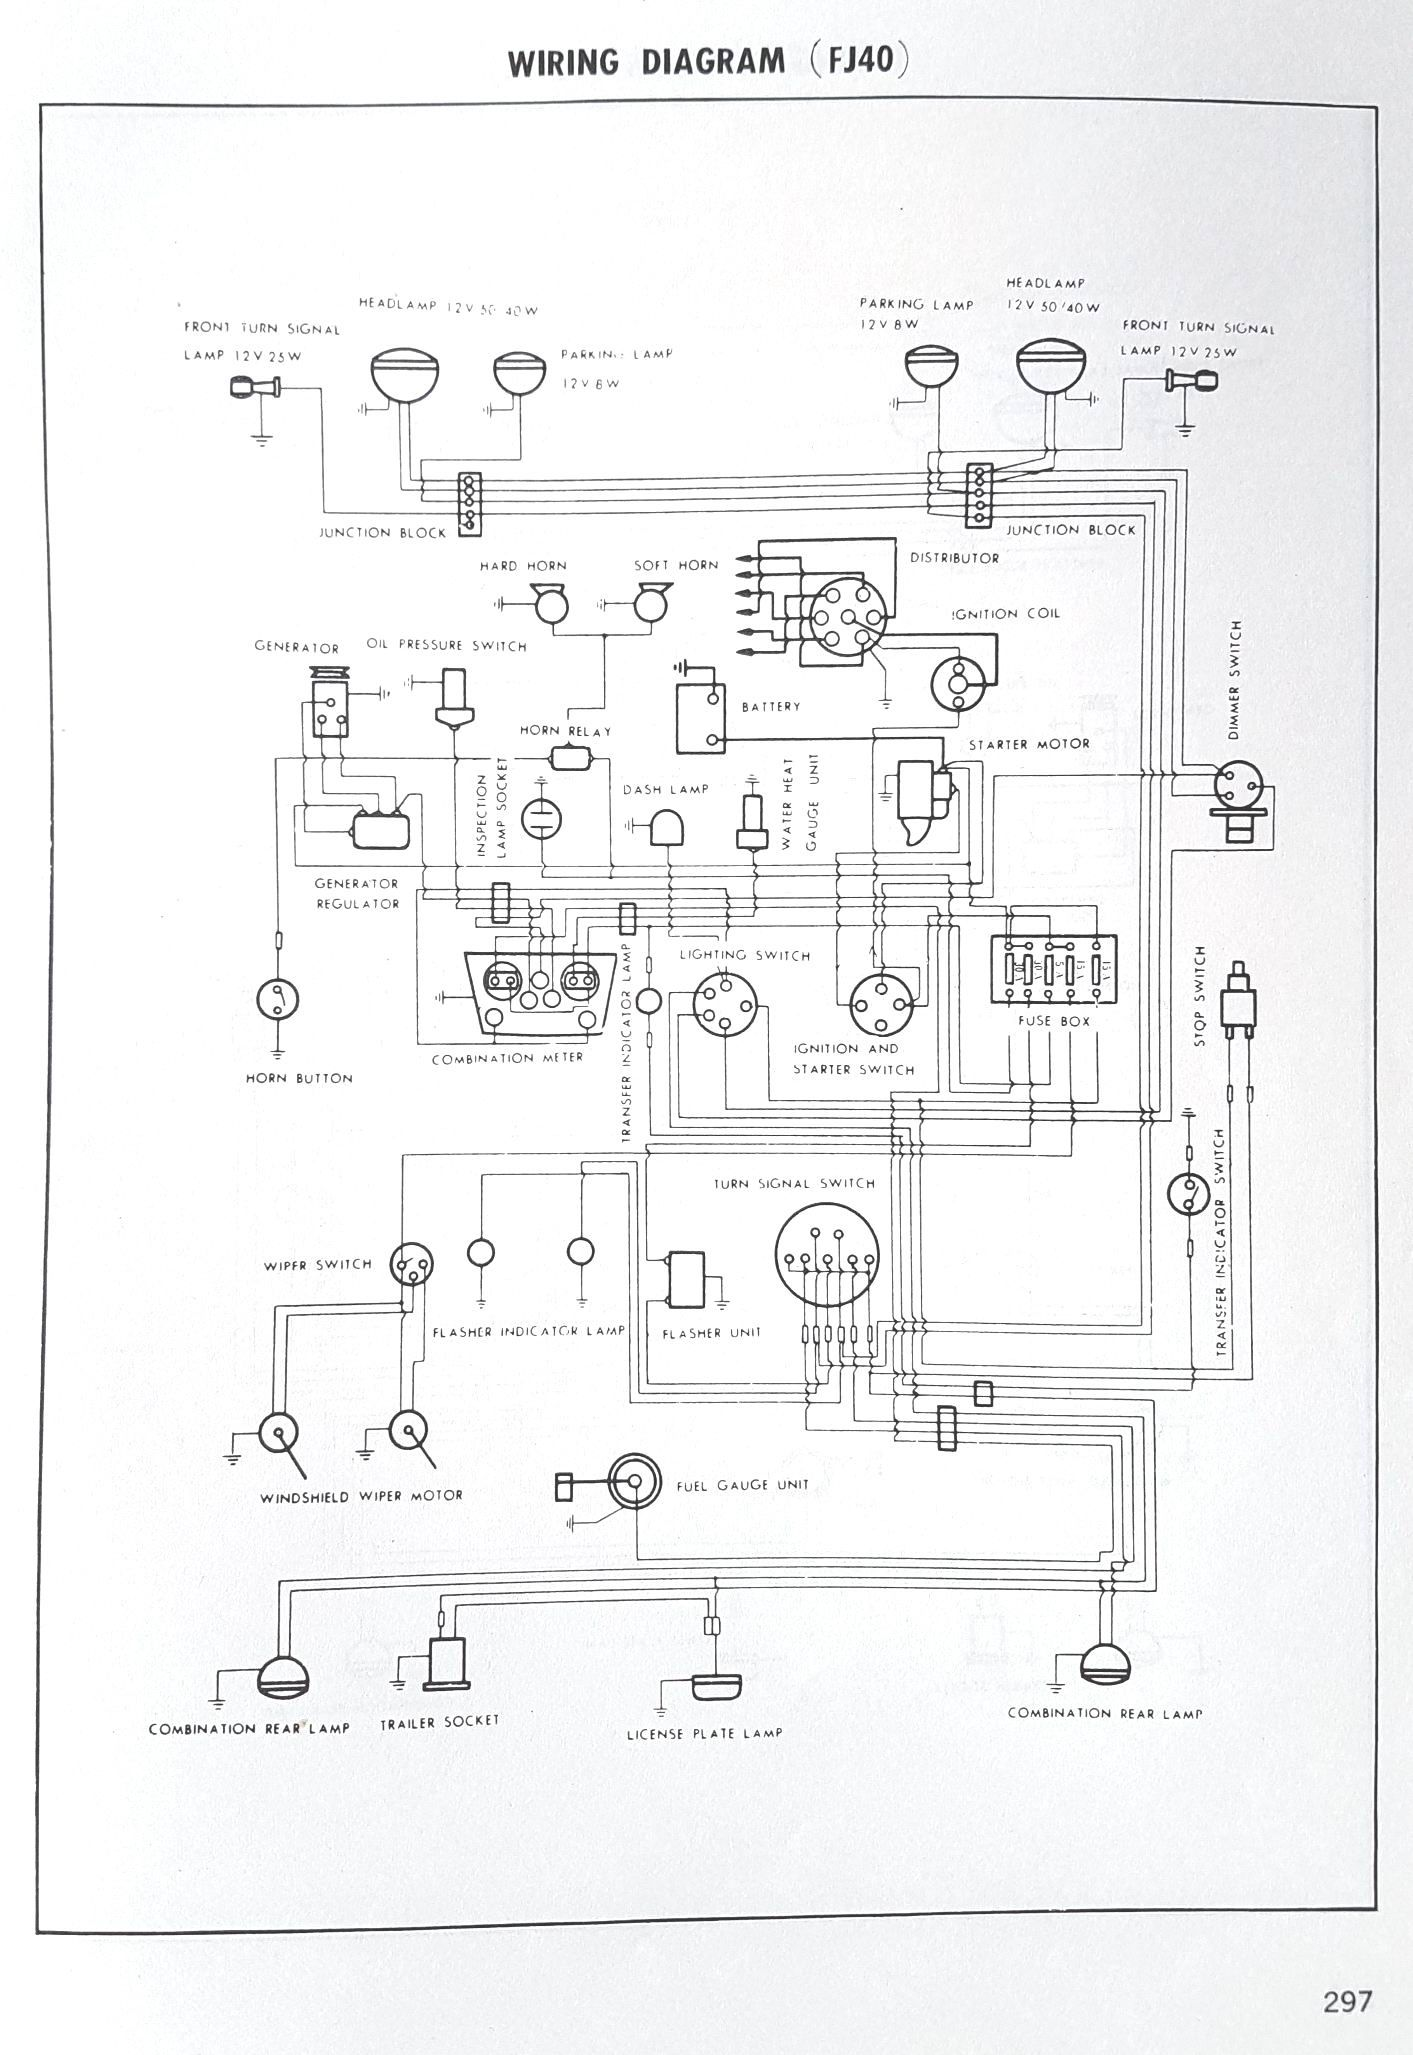 medium resolution of toyota landcruiser service manual wiring diagram fj40